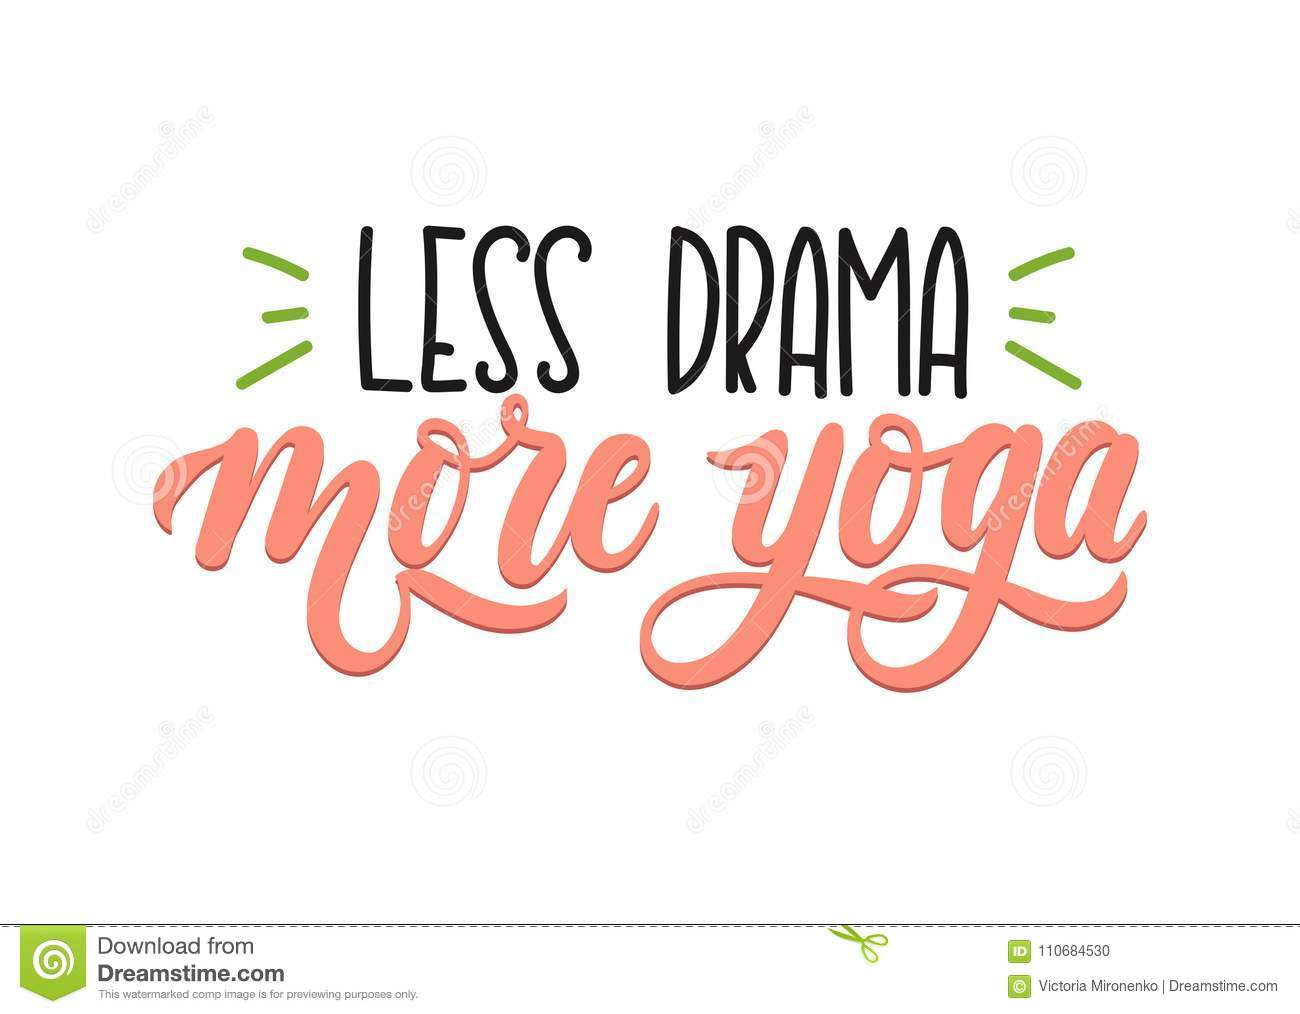 Less Drama More Yoga Quote Hand Drawn Brush Calligraphy Inspirational Poster Vector Design For Gym Textile Posters